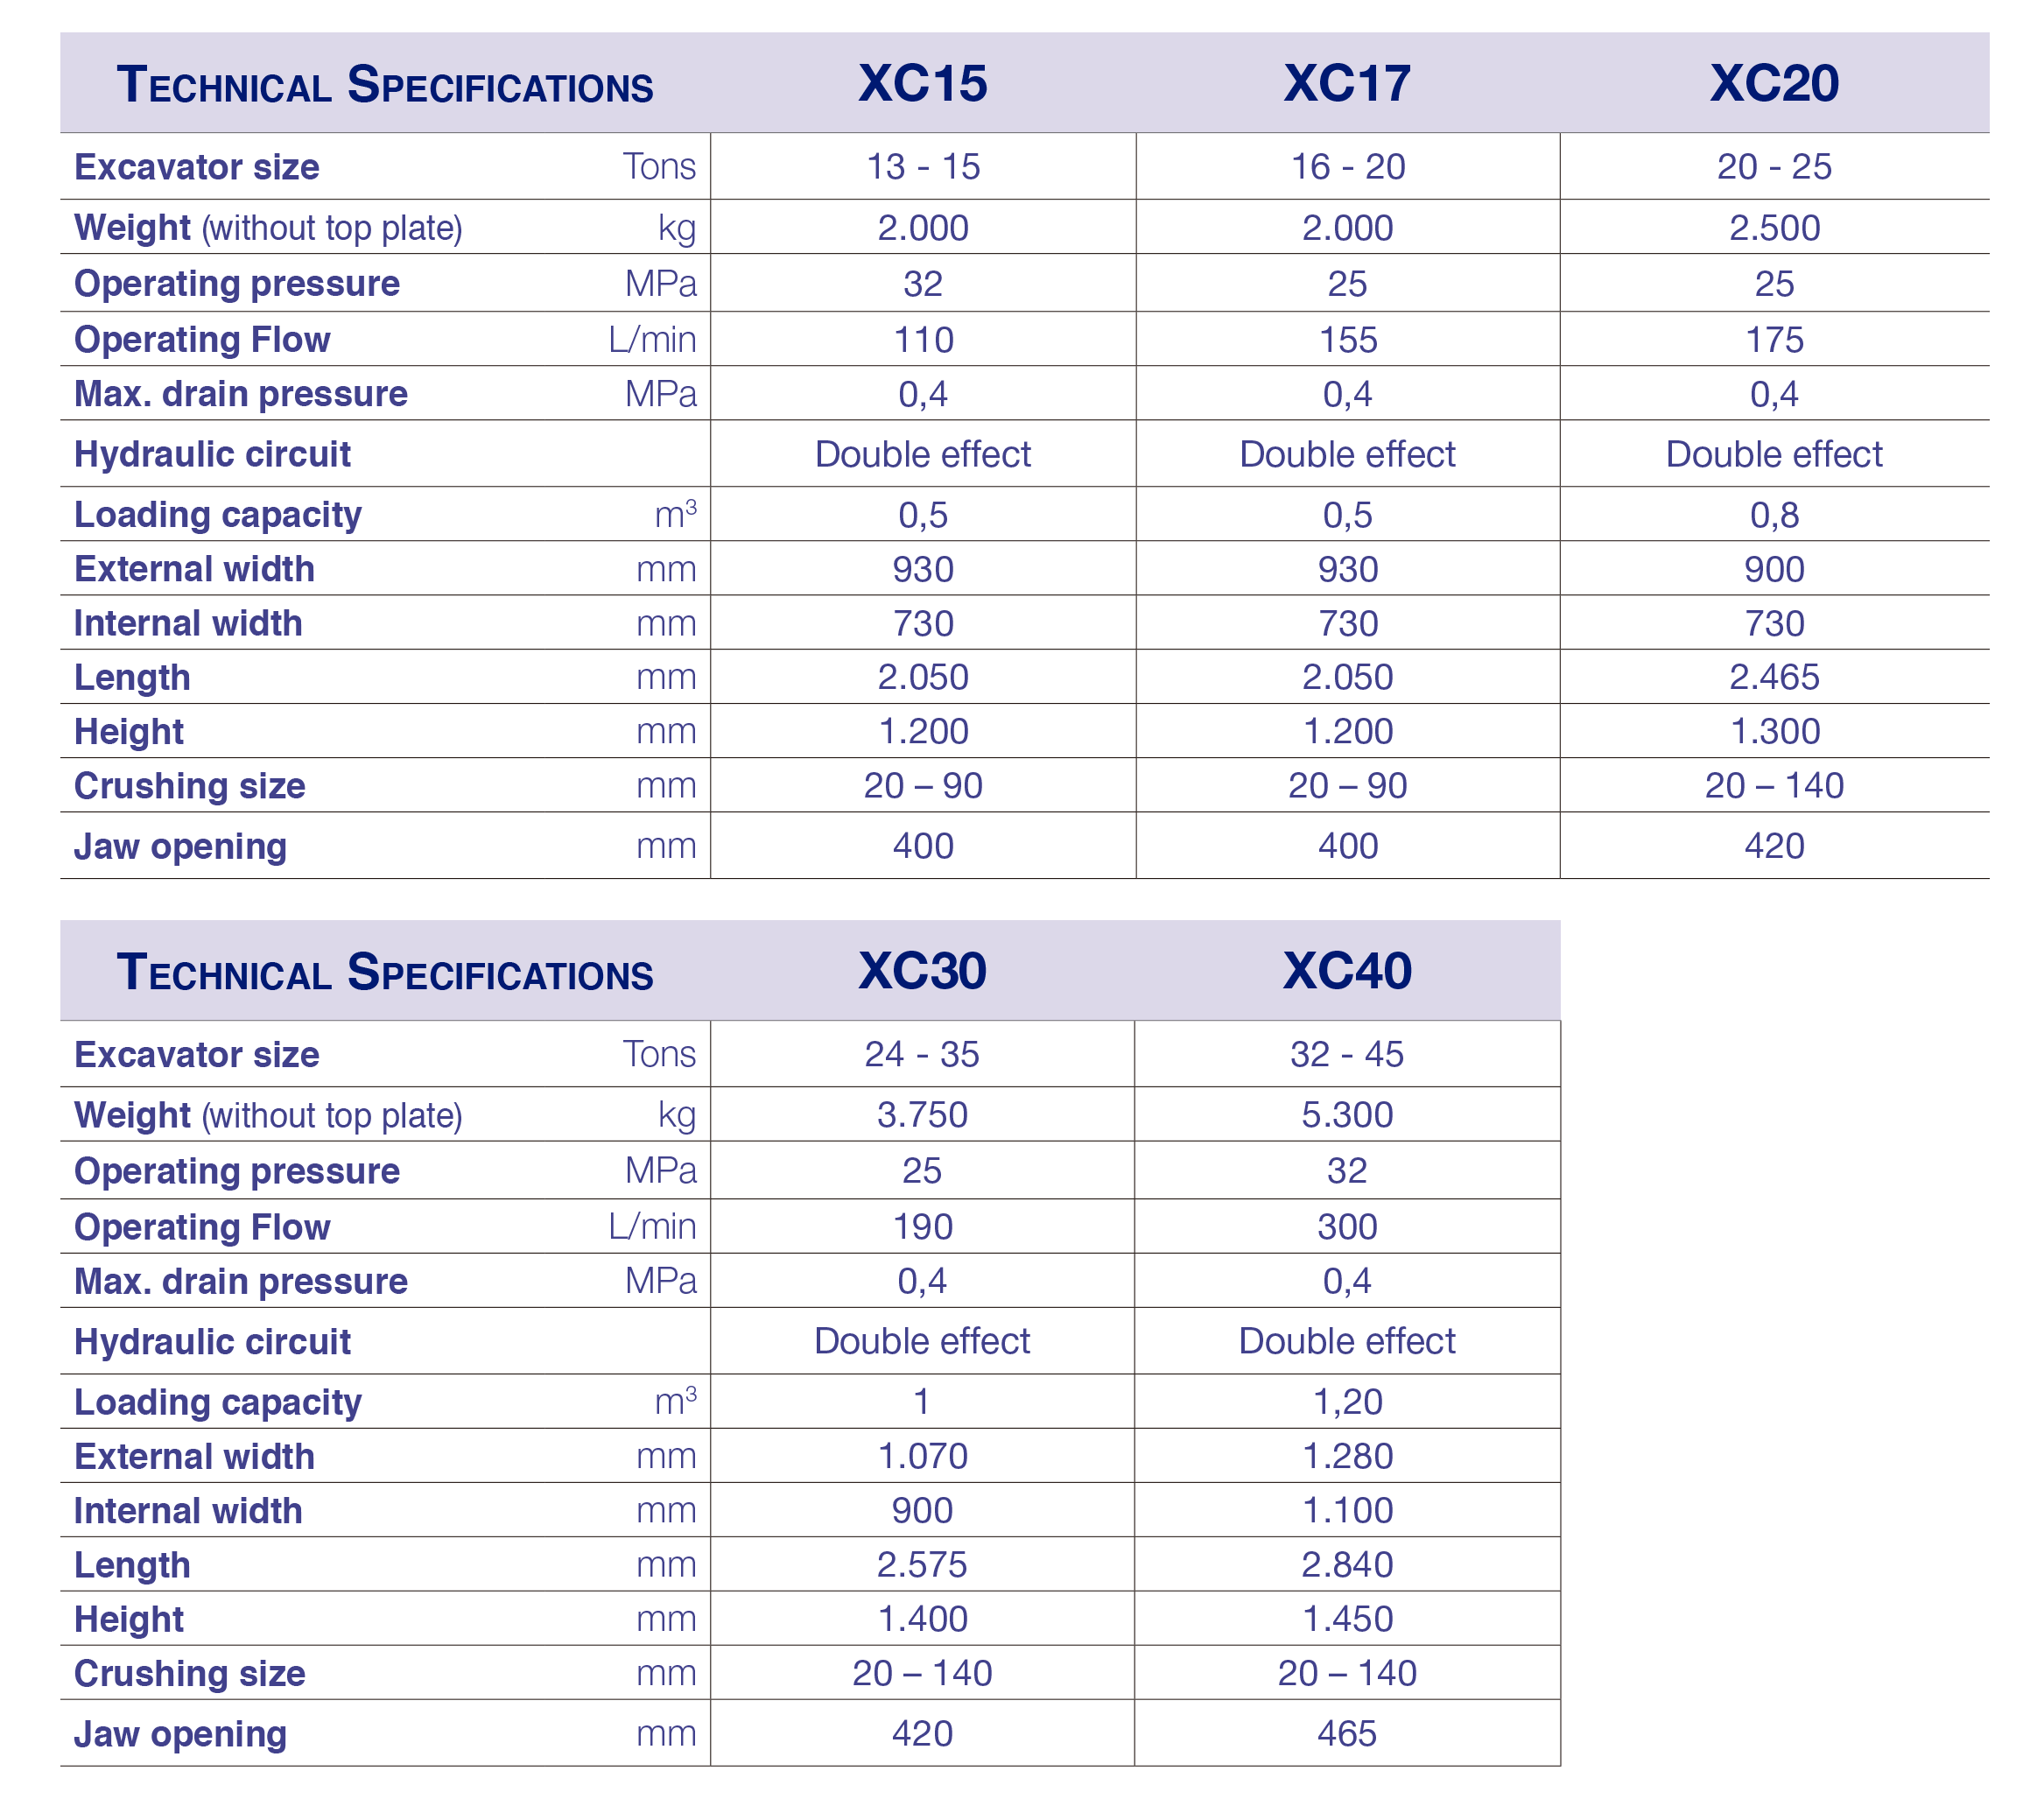 XCENTRIC CRUSHER TECHNICAL SPECIFICATIONS